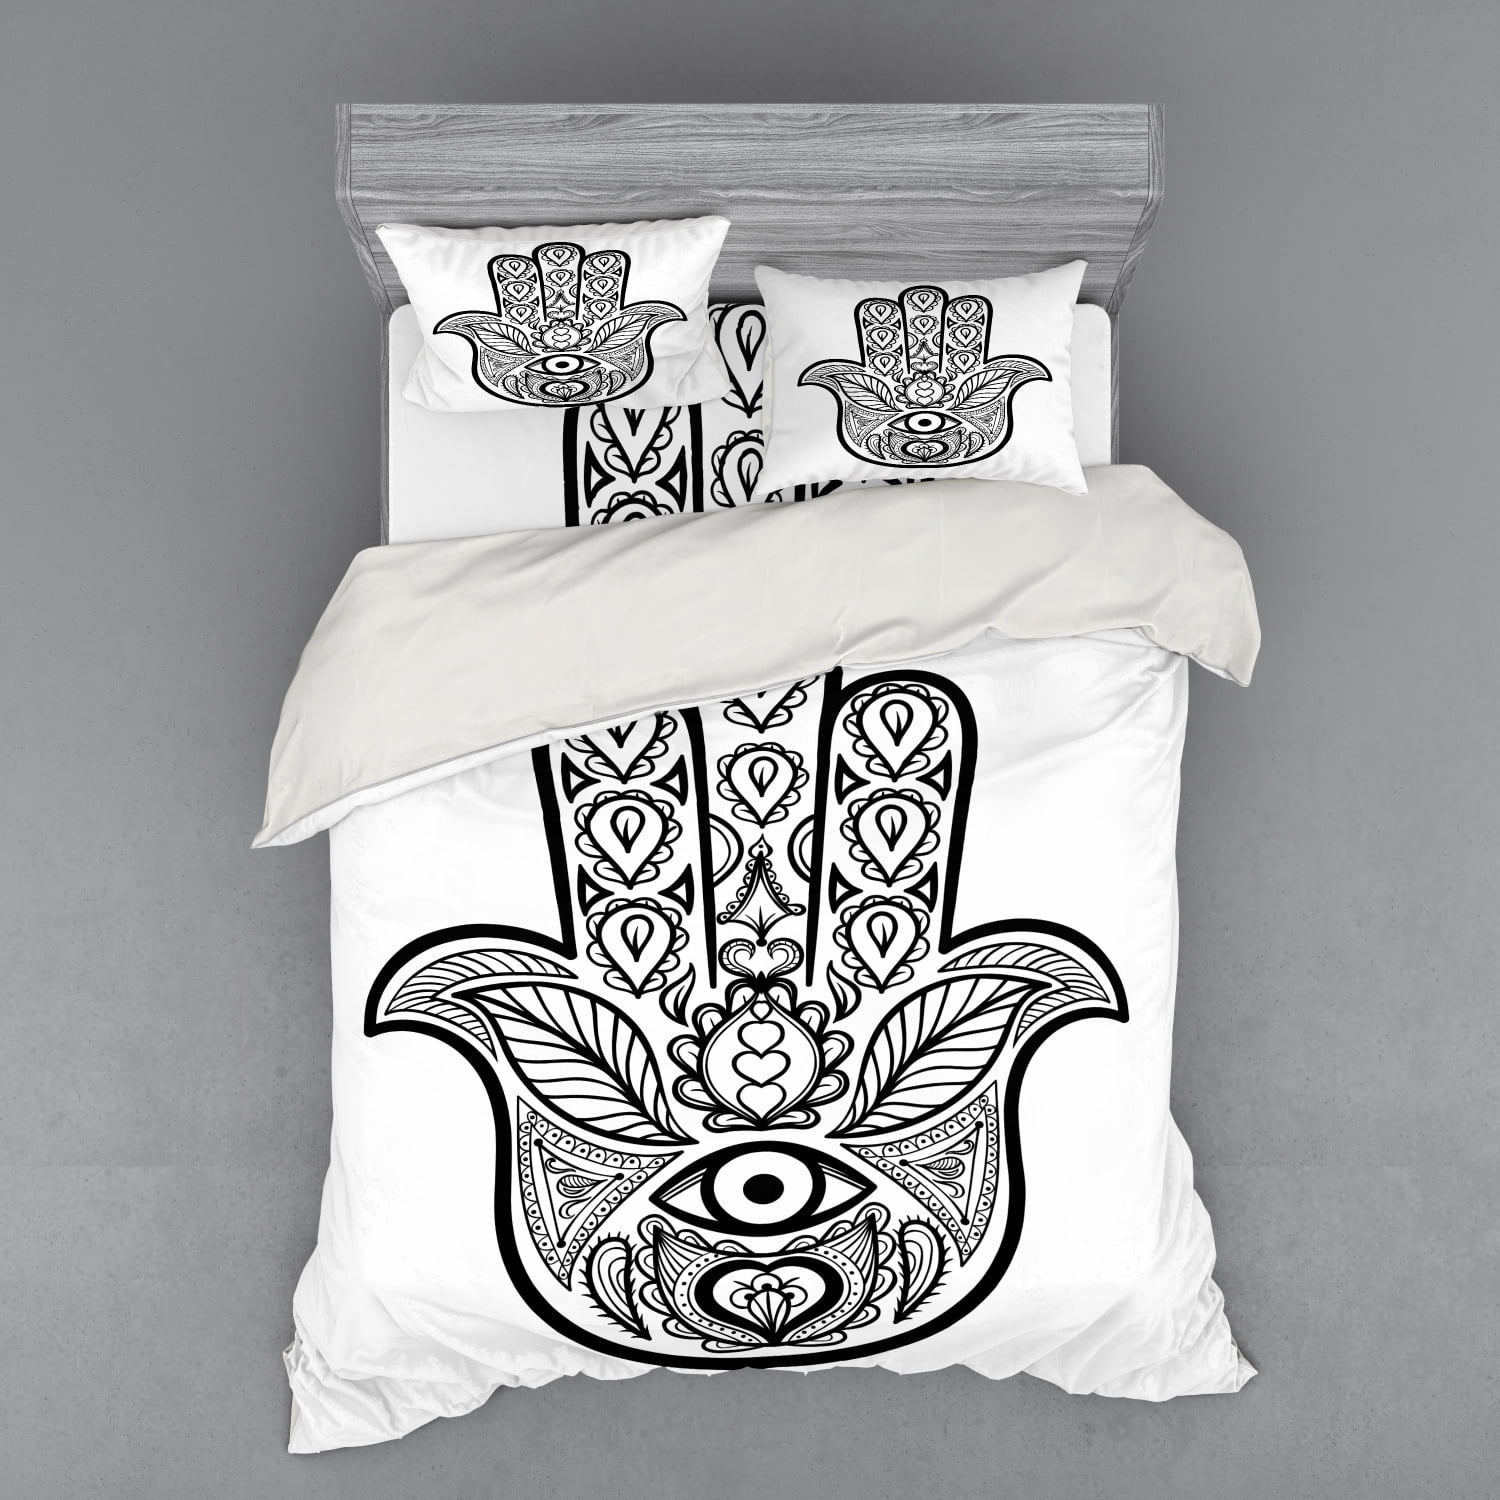 Mandala Duvet Cover Set Hamsa Hand Inner Eye Image Evil Eyes Bless You Oriental Eastern Art Print Bedding Set With Shams And Fitted Sheet 3 Sizes By Ambesonne Walmart Com Walmart Com